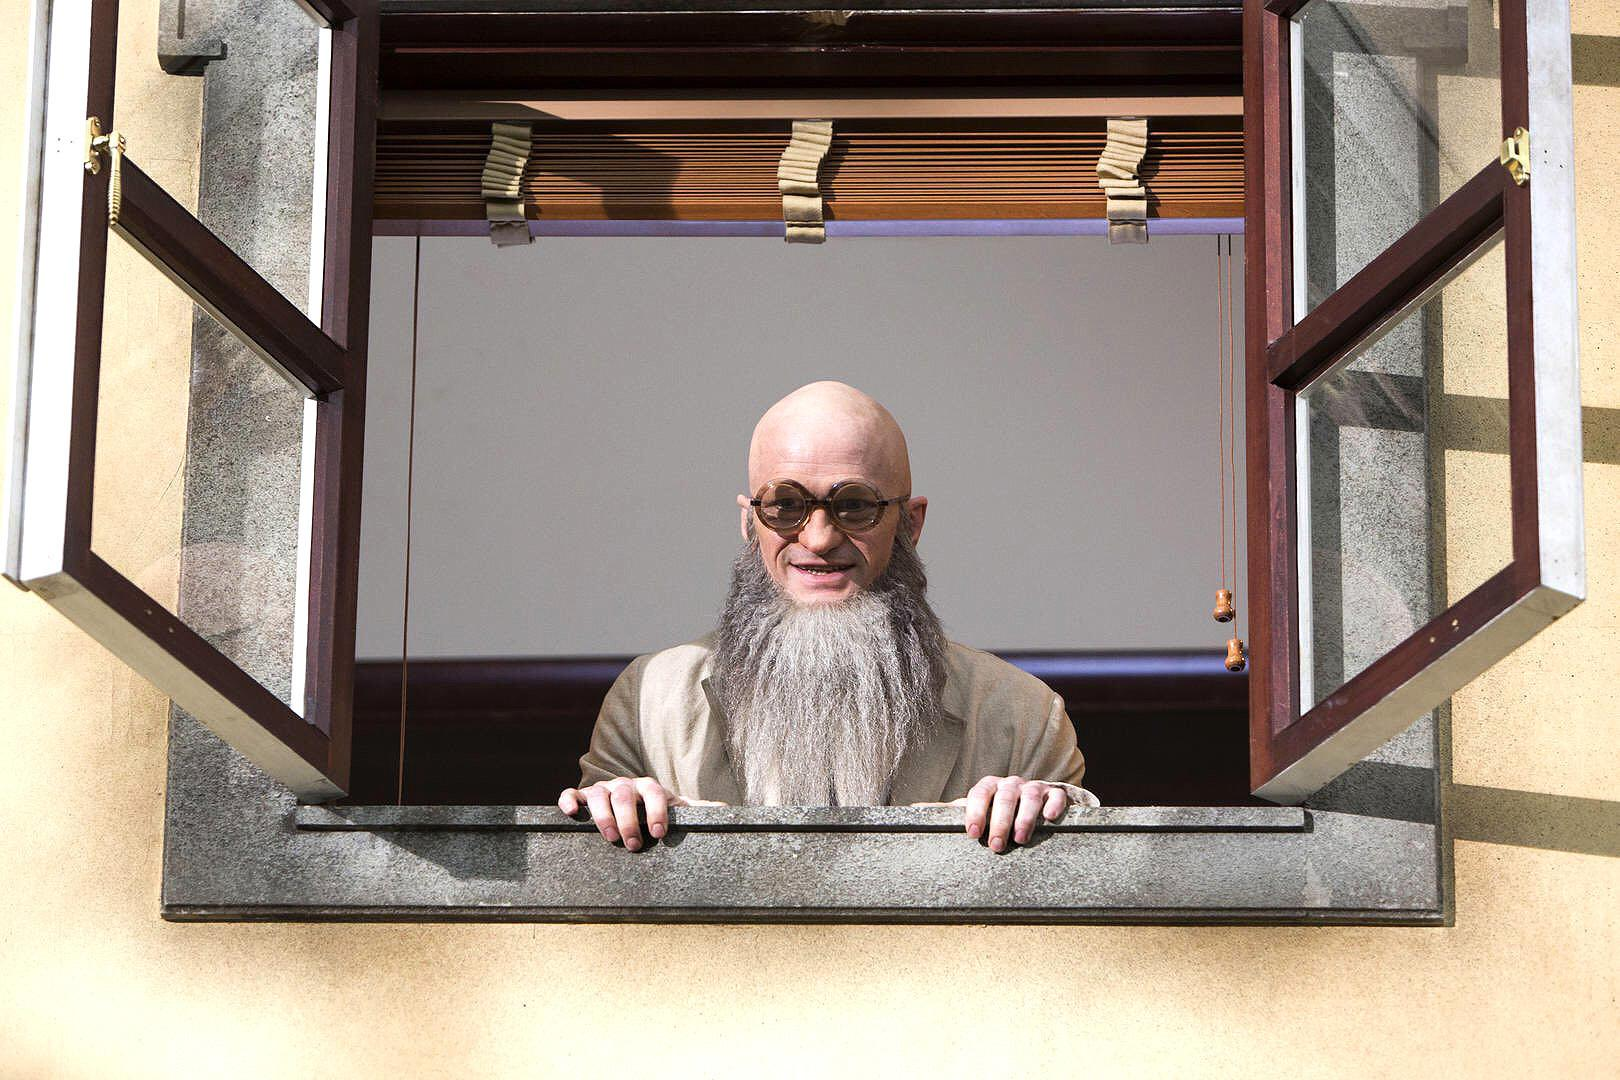 Series Unfortunate Events See Count Olaf Disguises